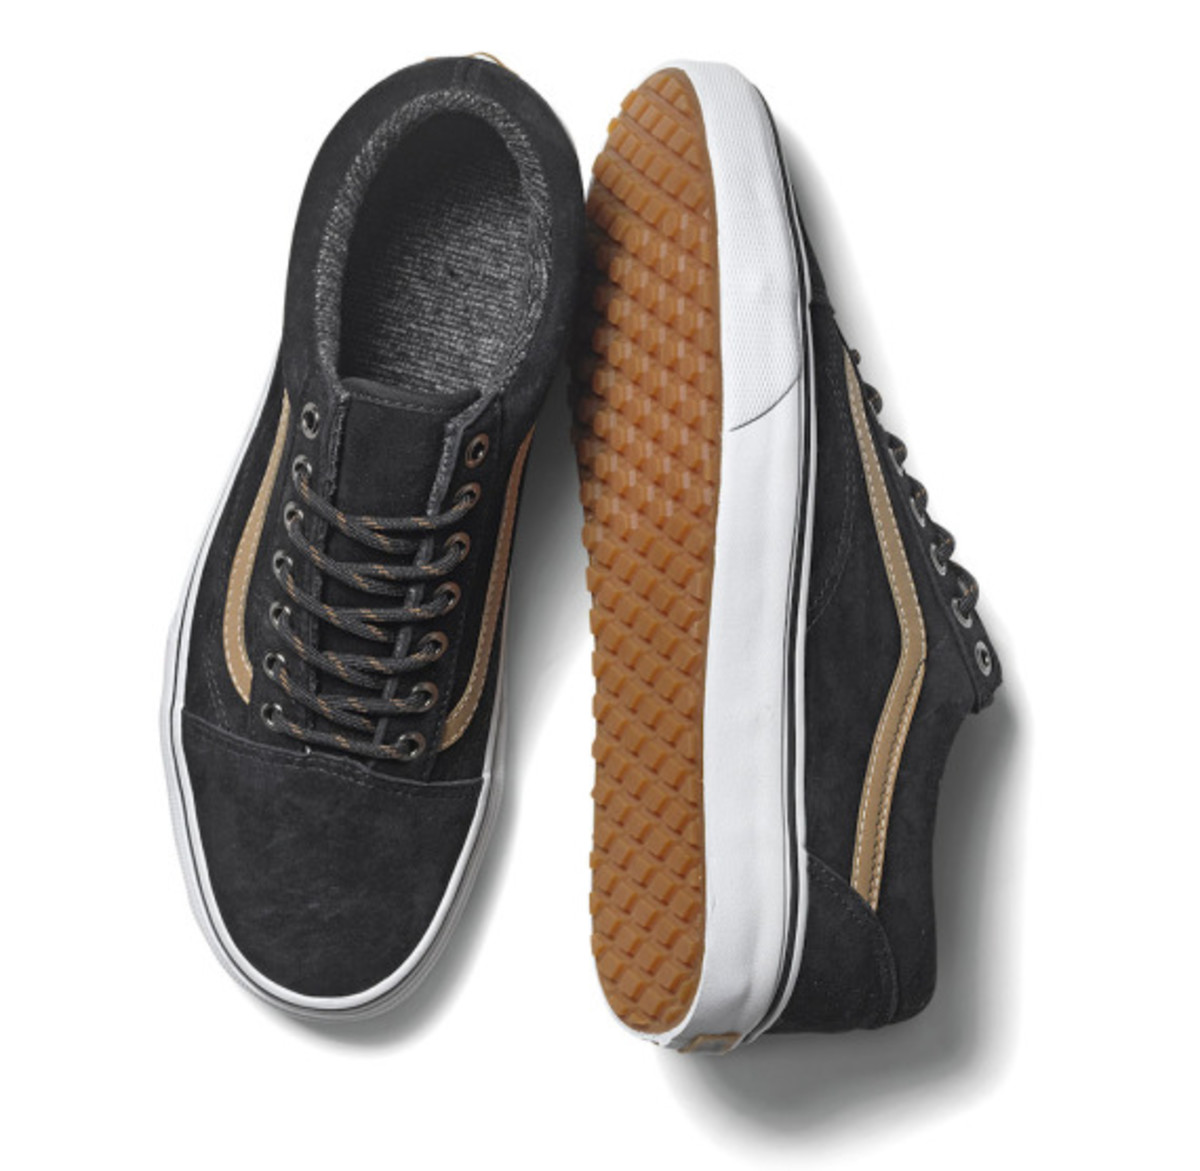 vans-mountain-edition-holiday-2014-collection-06